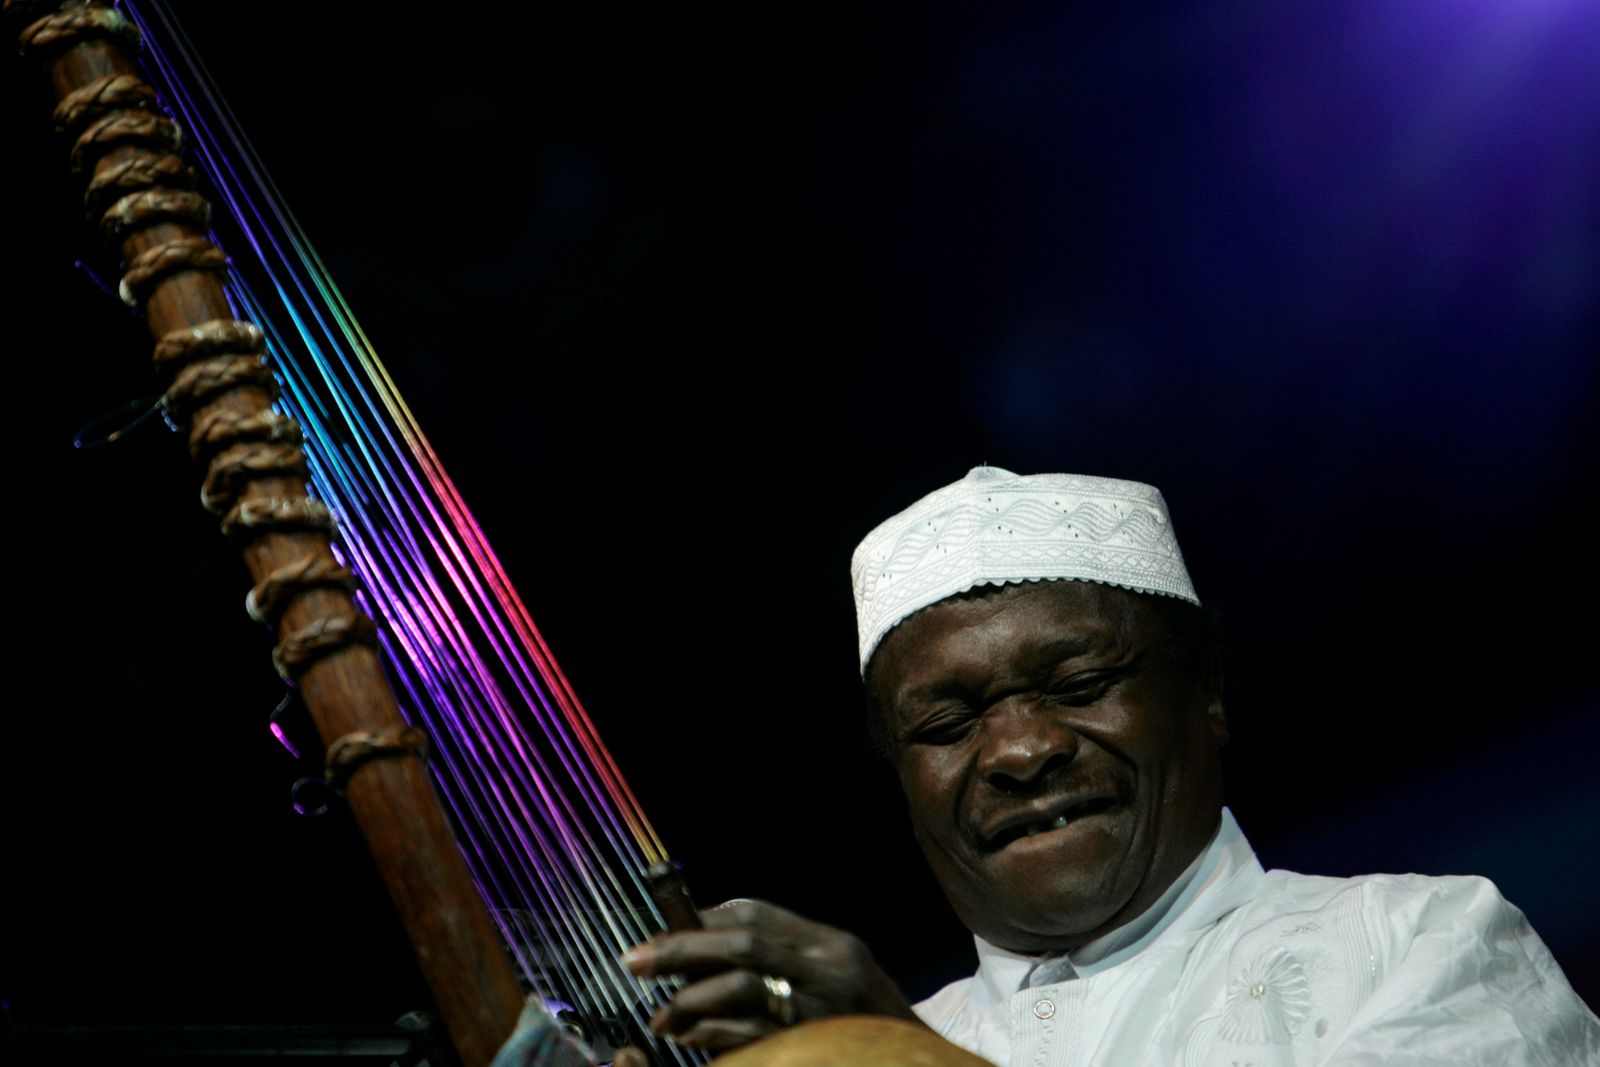 FILE PHOTO: Malian singer Mory Kante performs during his concert in Mawazine Festival